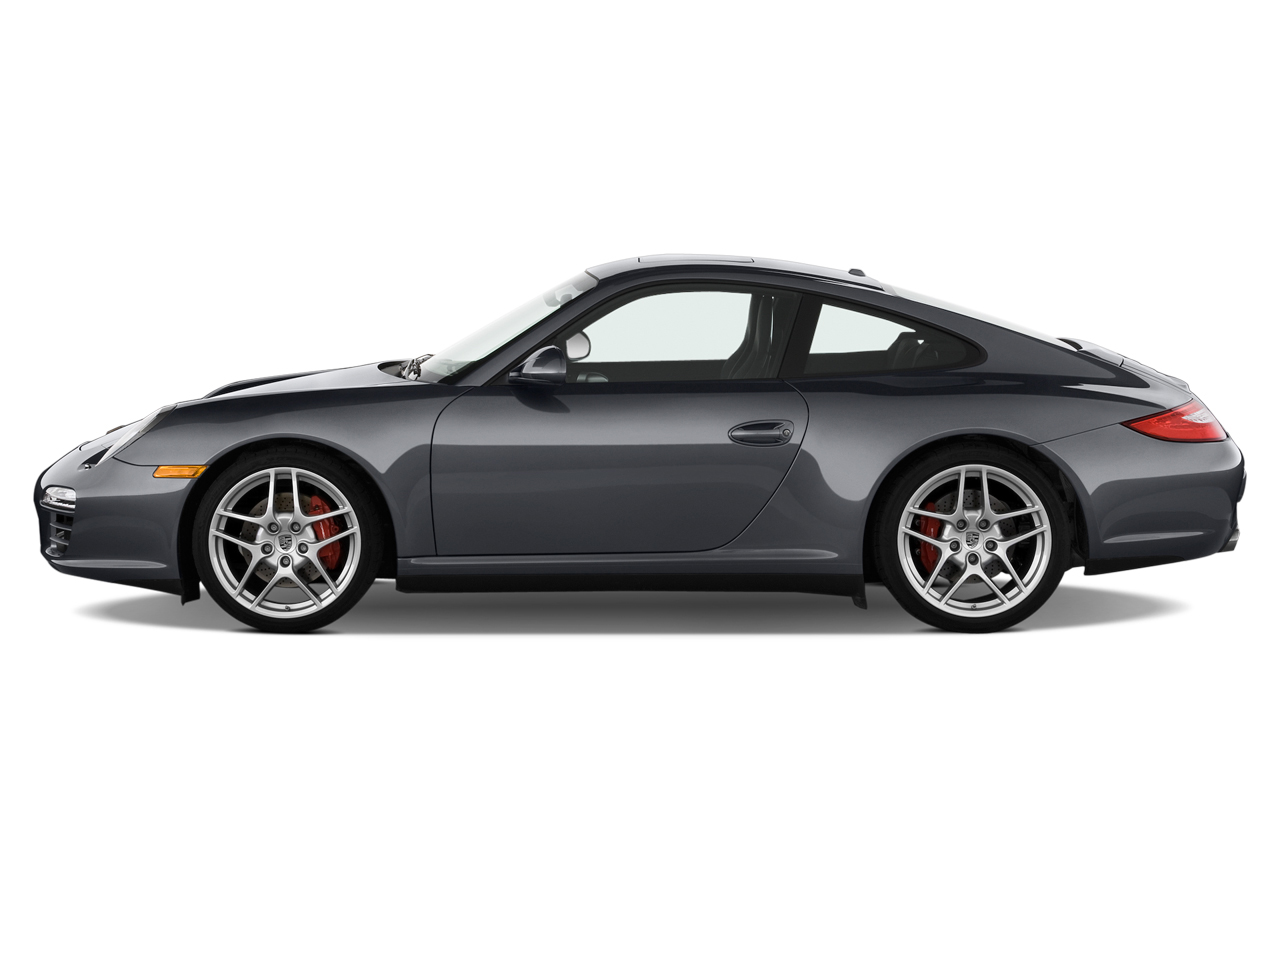 2019 Porsche 911 Carrera 4S Coupe photo - 2